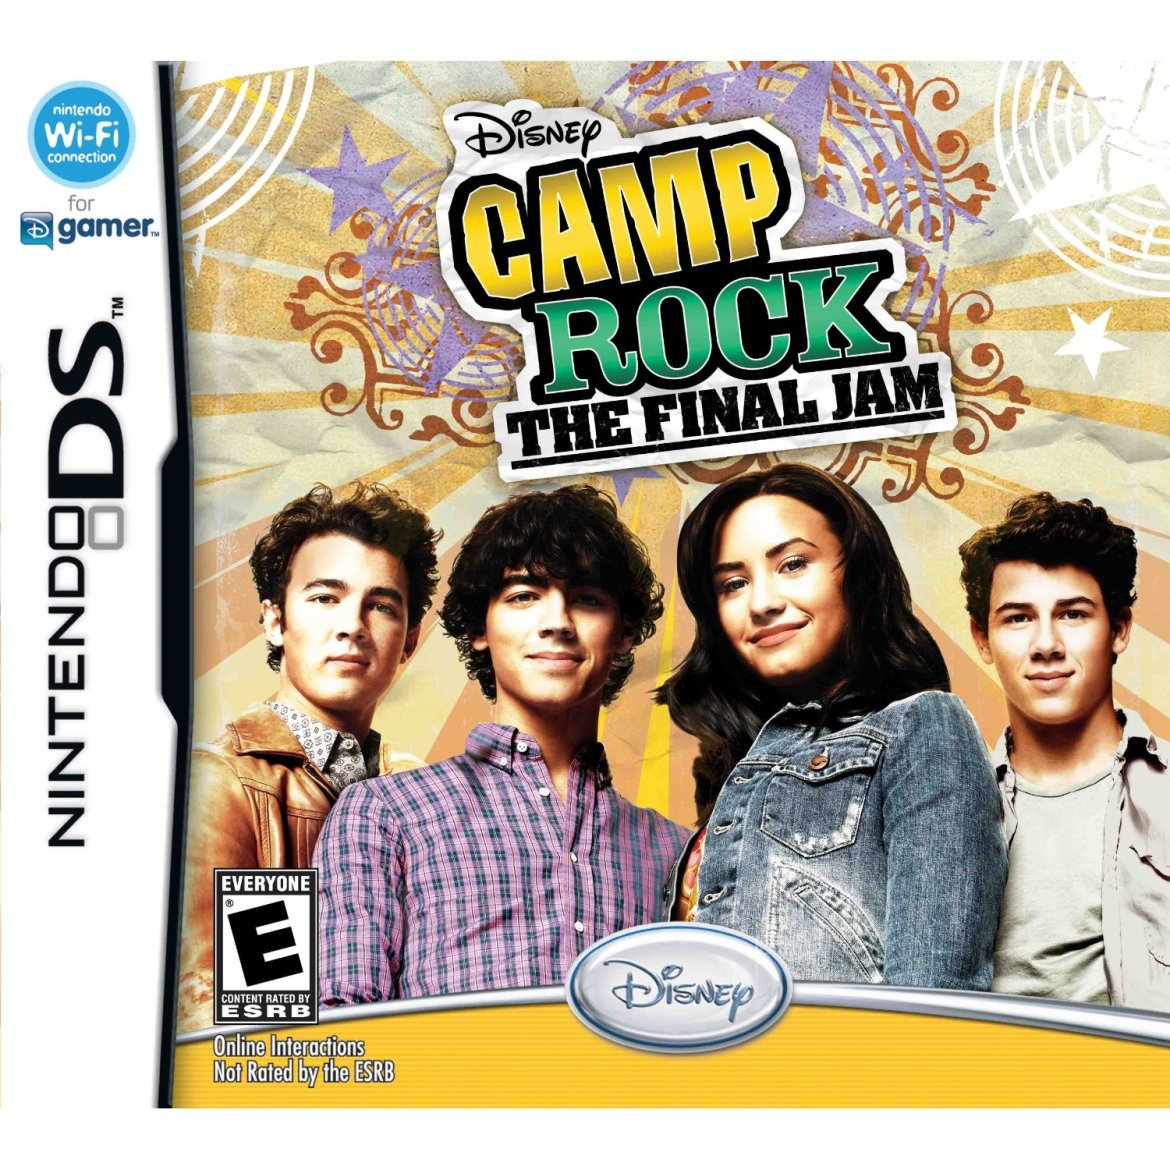 Review: Disney Camp Rock the Final Jam for Nintendo DS